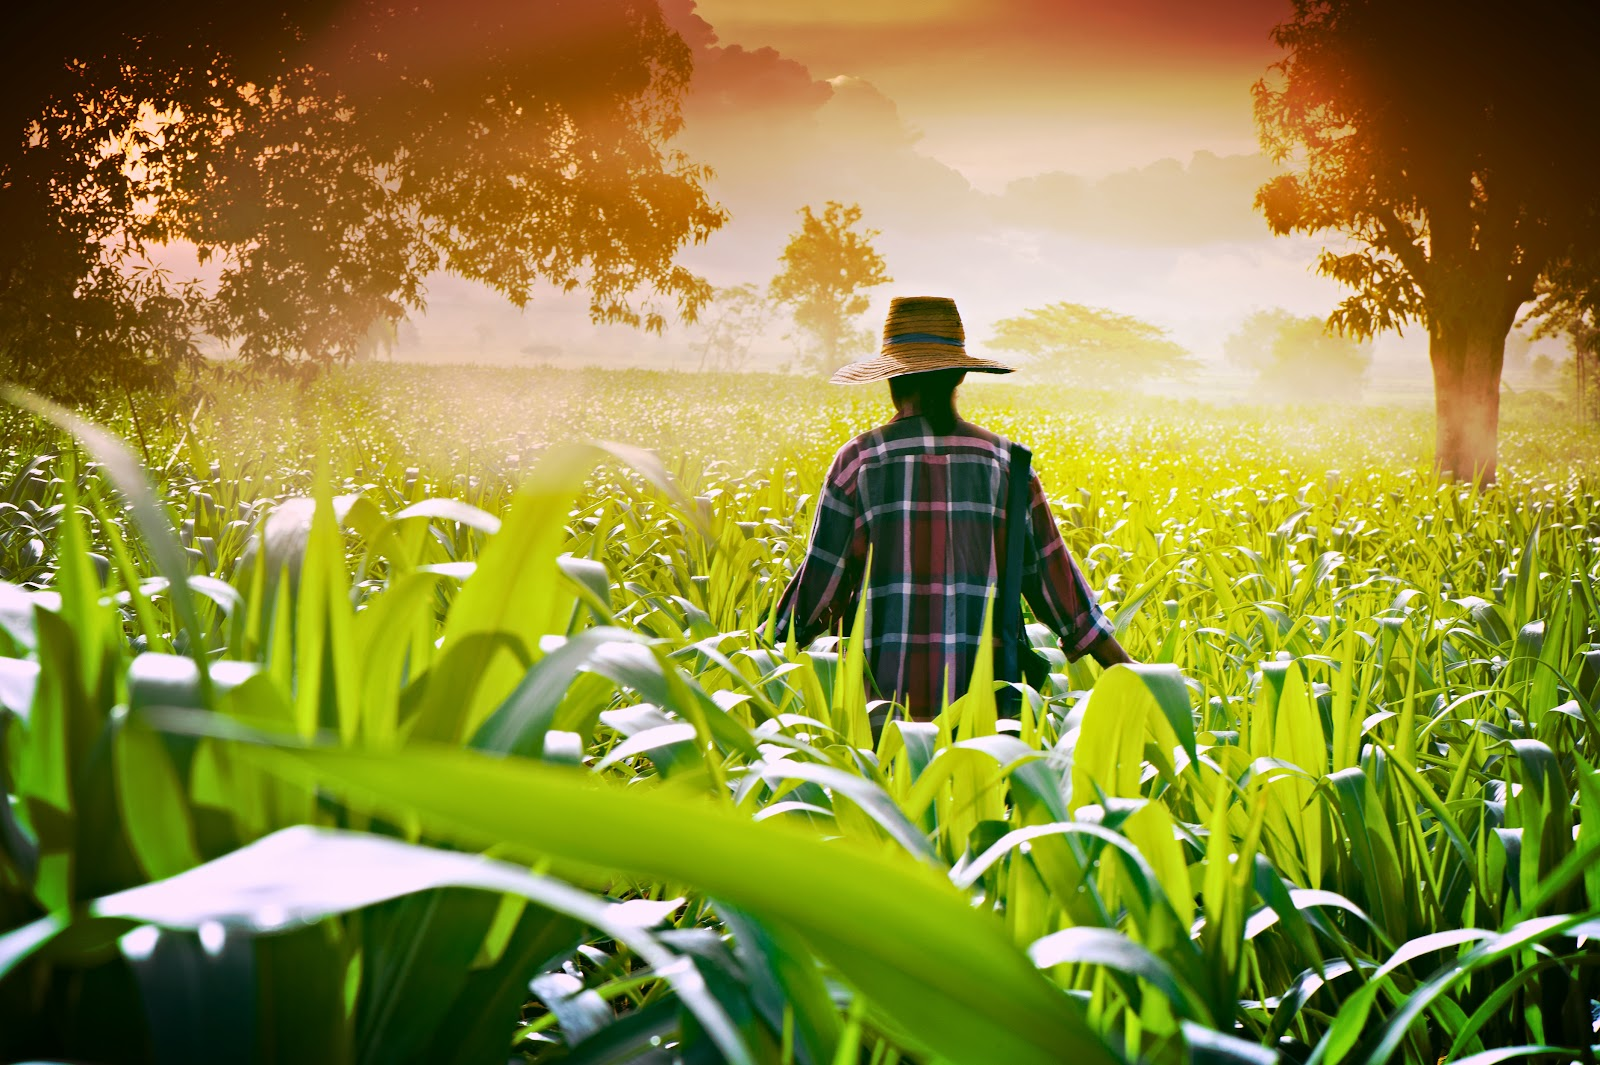 farmer-woman-walking-in-corn-fields-at-early-morning_21782208660_o.jpg